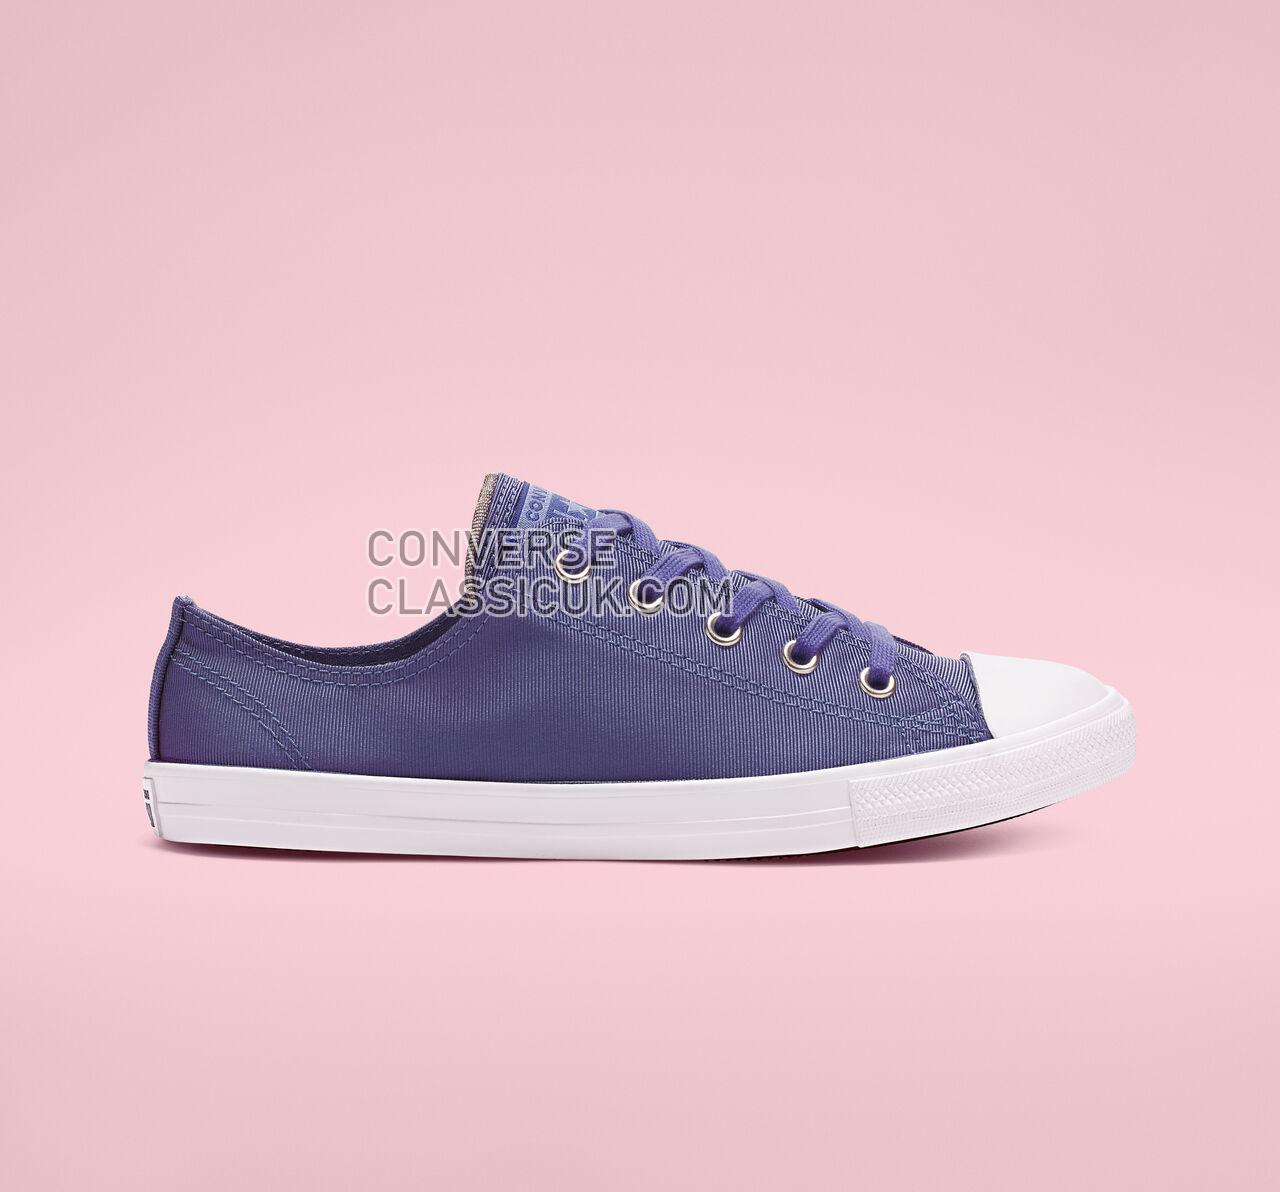 Converse Chuck Taylor All Star Dainty Low Top Womens 564308F Washed Indigo/Indigo Fog Shoes